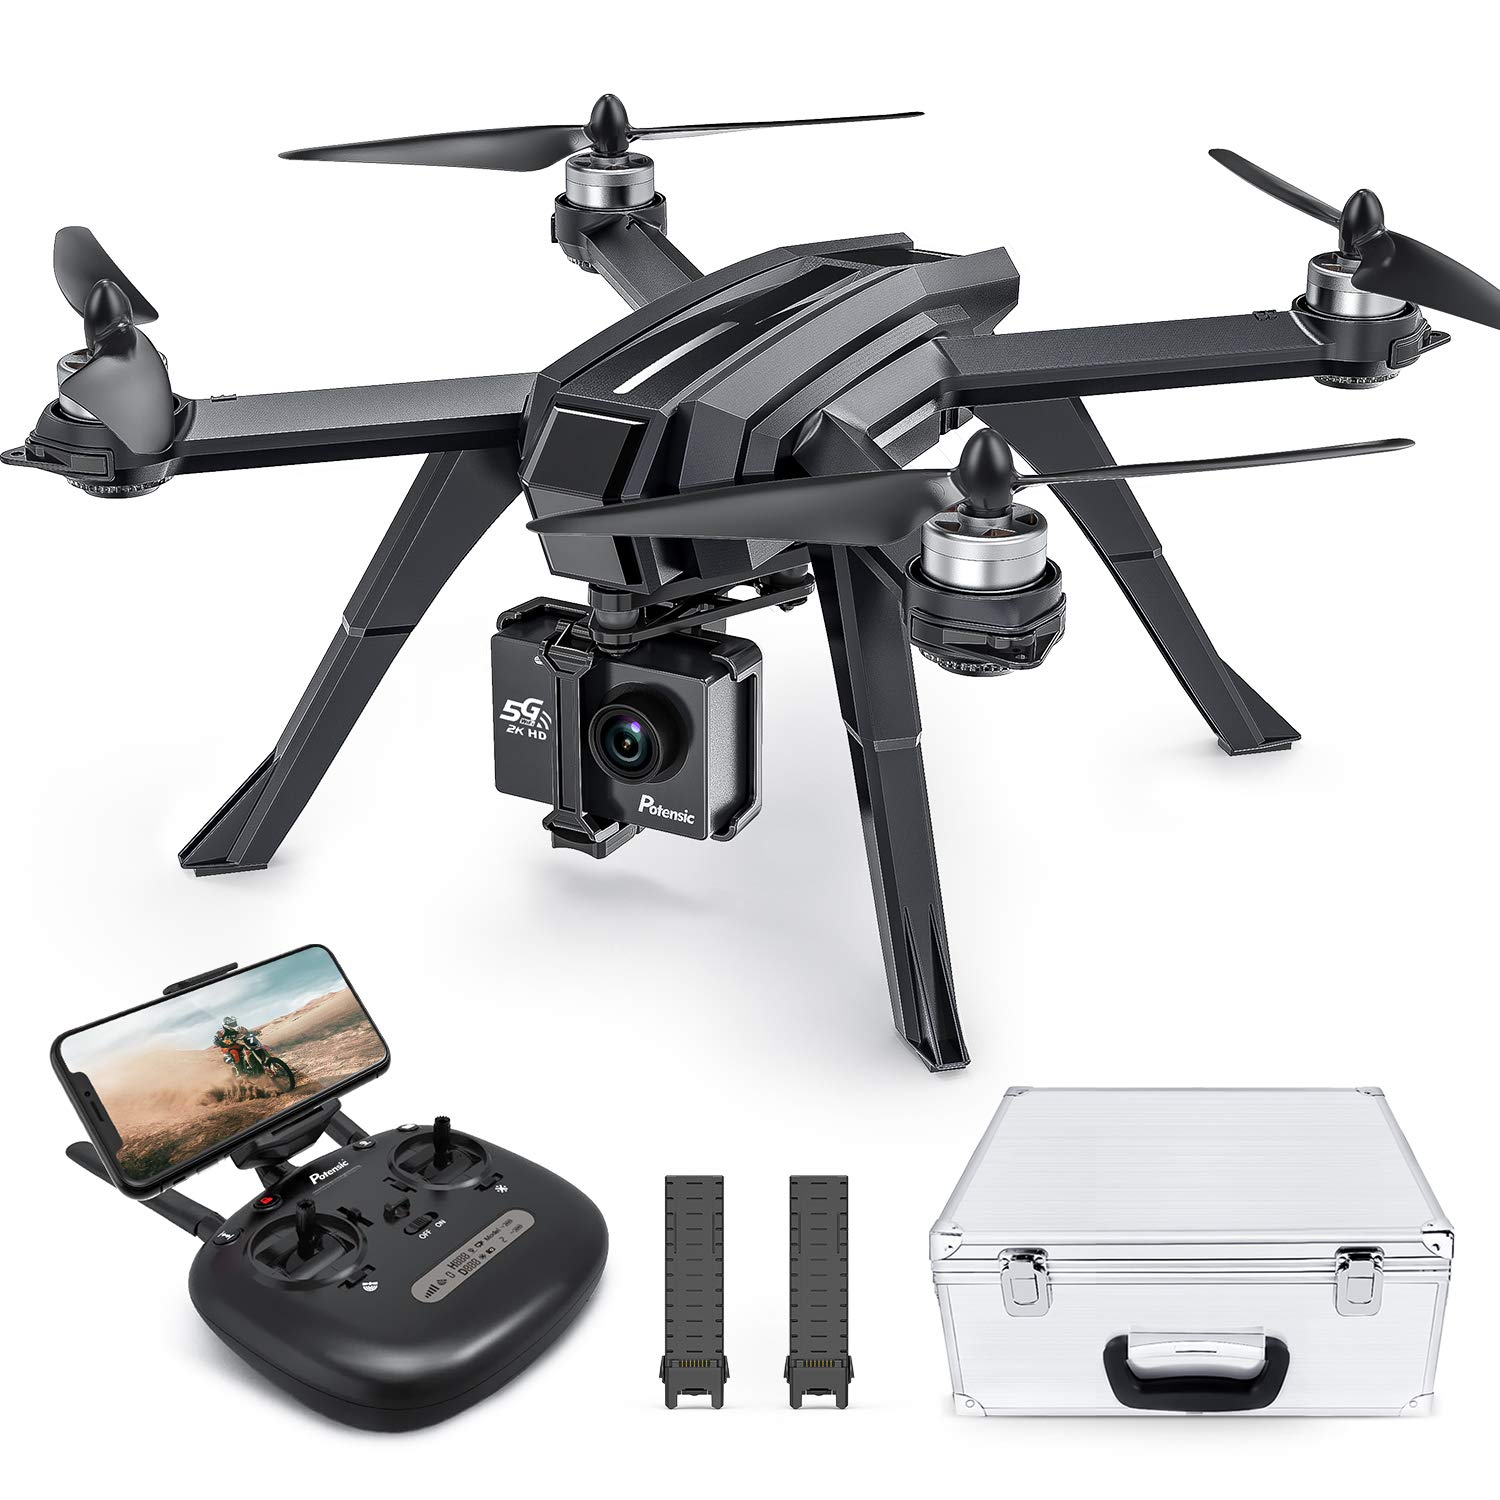 potensic-d85-gps-drone-with-2k-fpv-camera-5g-wifi-live-video-brushless-quadcopter-with-carrying-case-2-batteries-40-min-auto-return-home-follow-me-selfie-drone-for-adult-beginner-expert